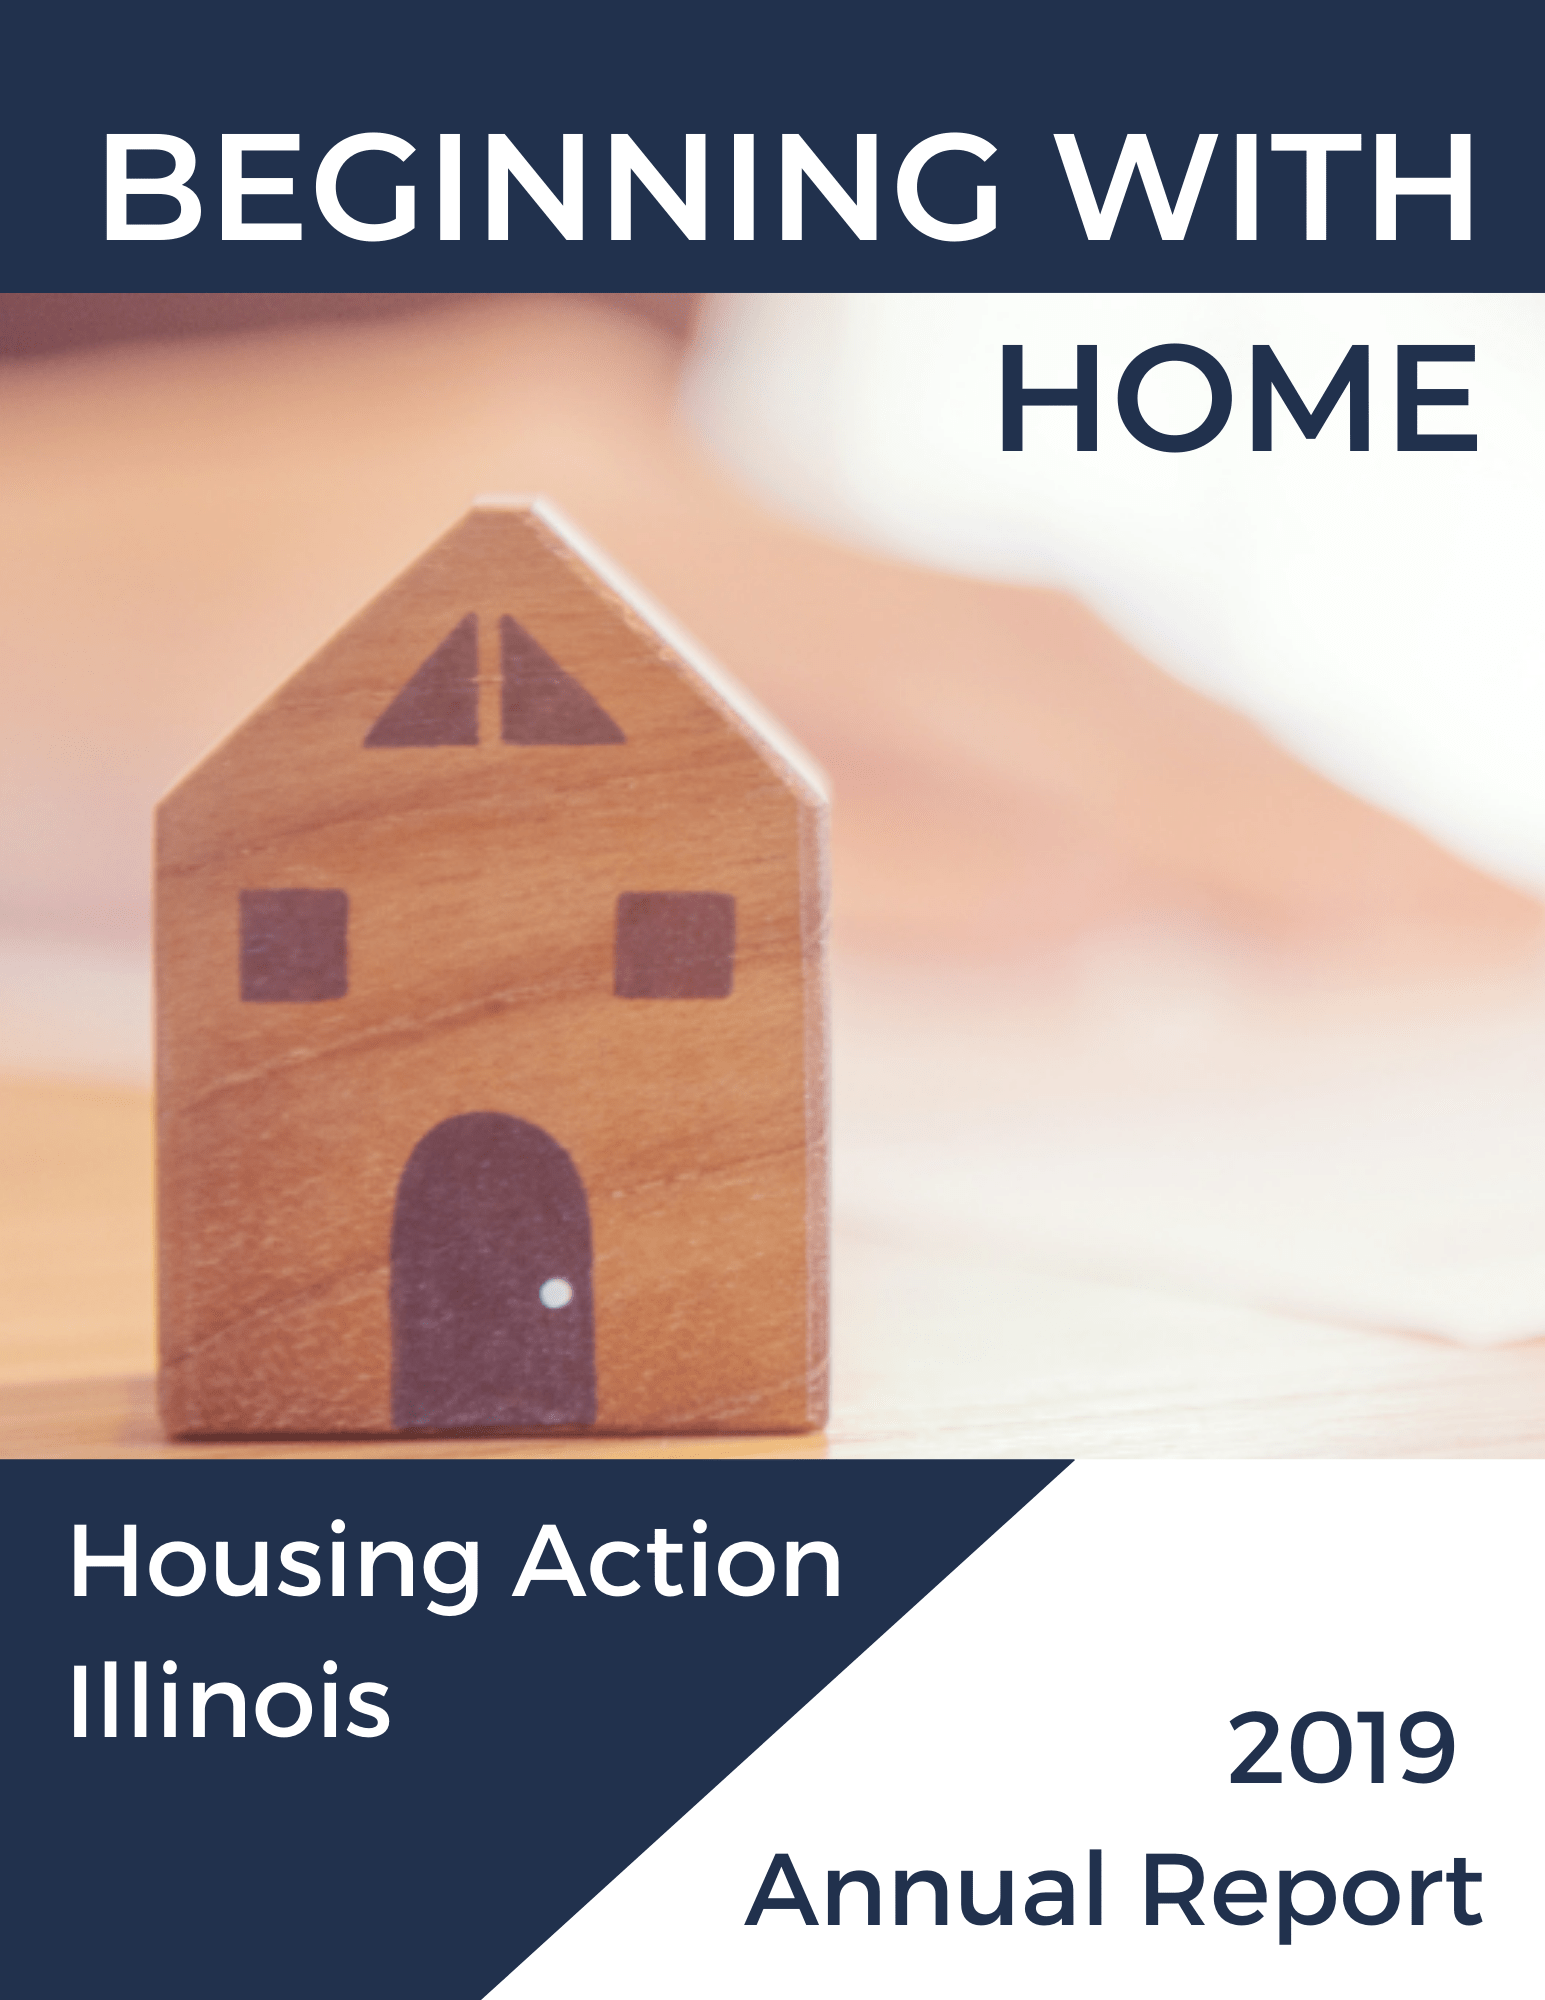 2018 Annual Report Cover: From Our Homes to Yours